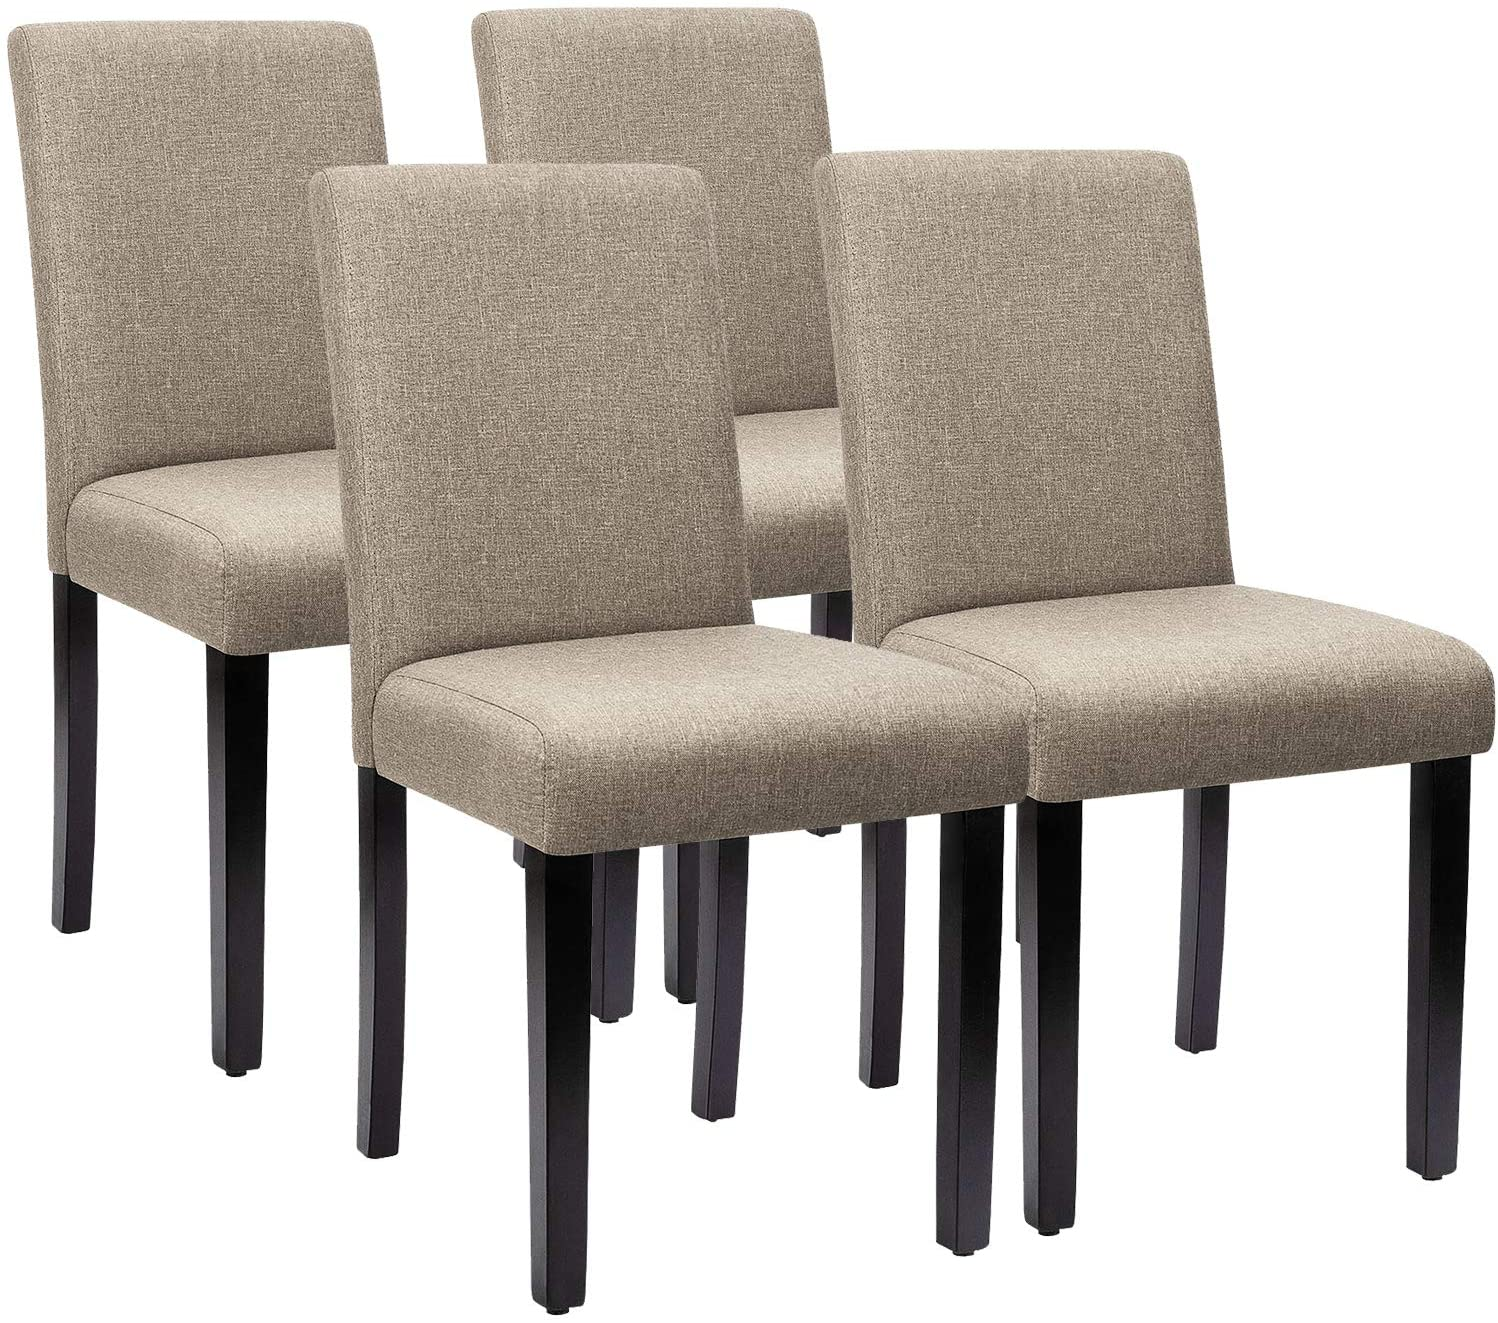 Beige Side Padded Chair w/ Solid Wood Legs Set of 4